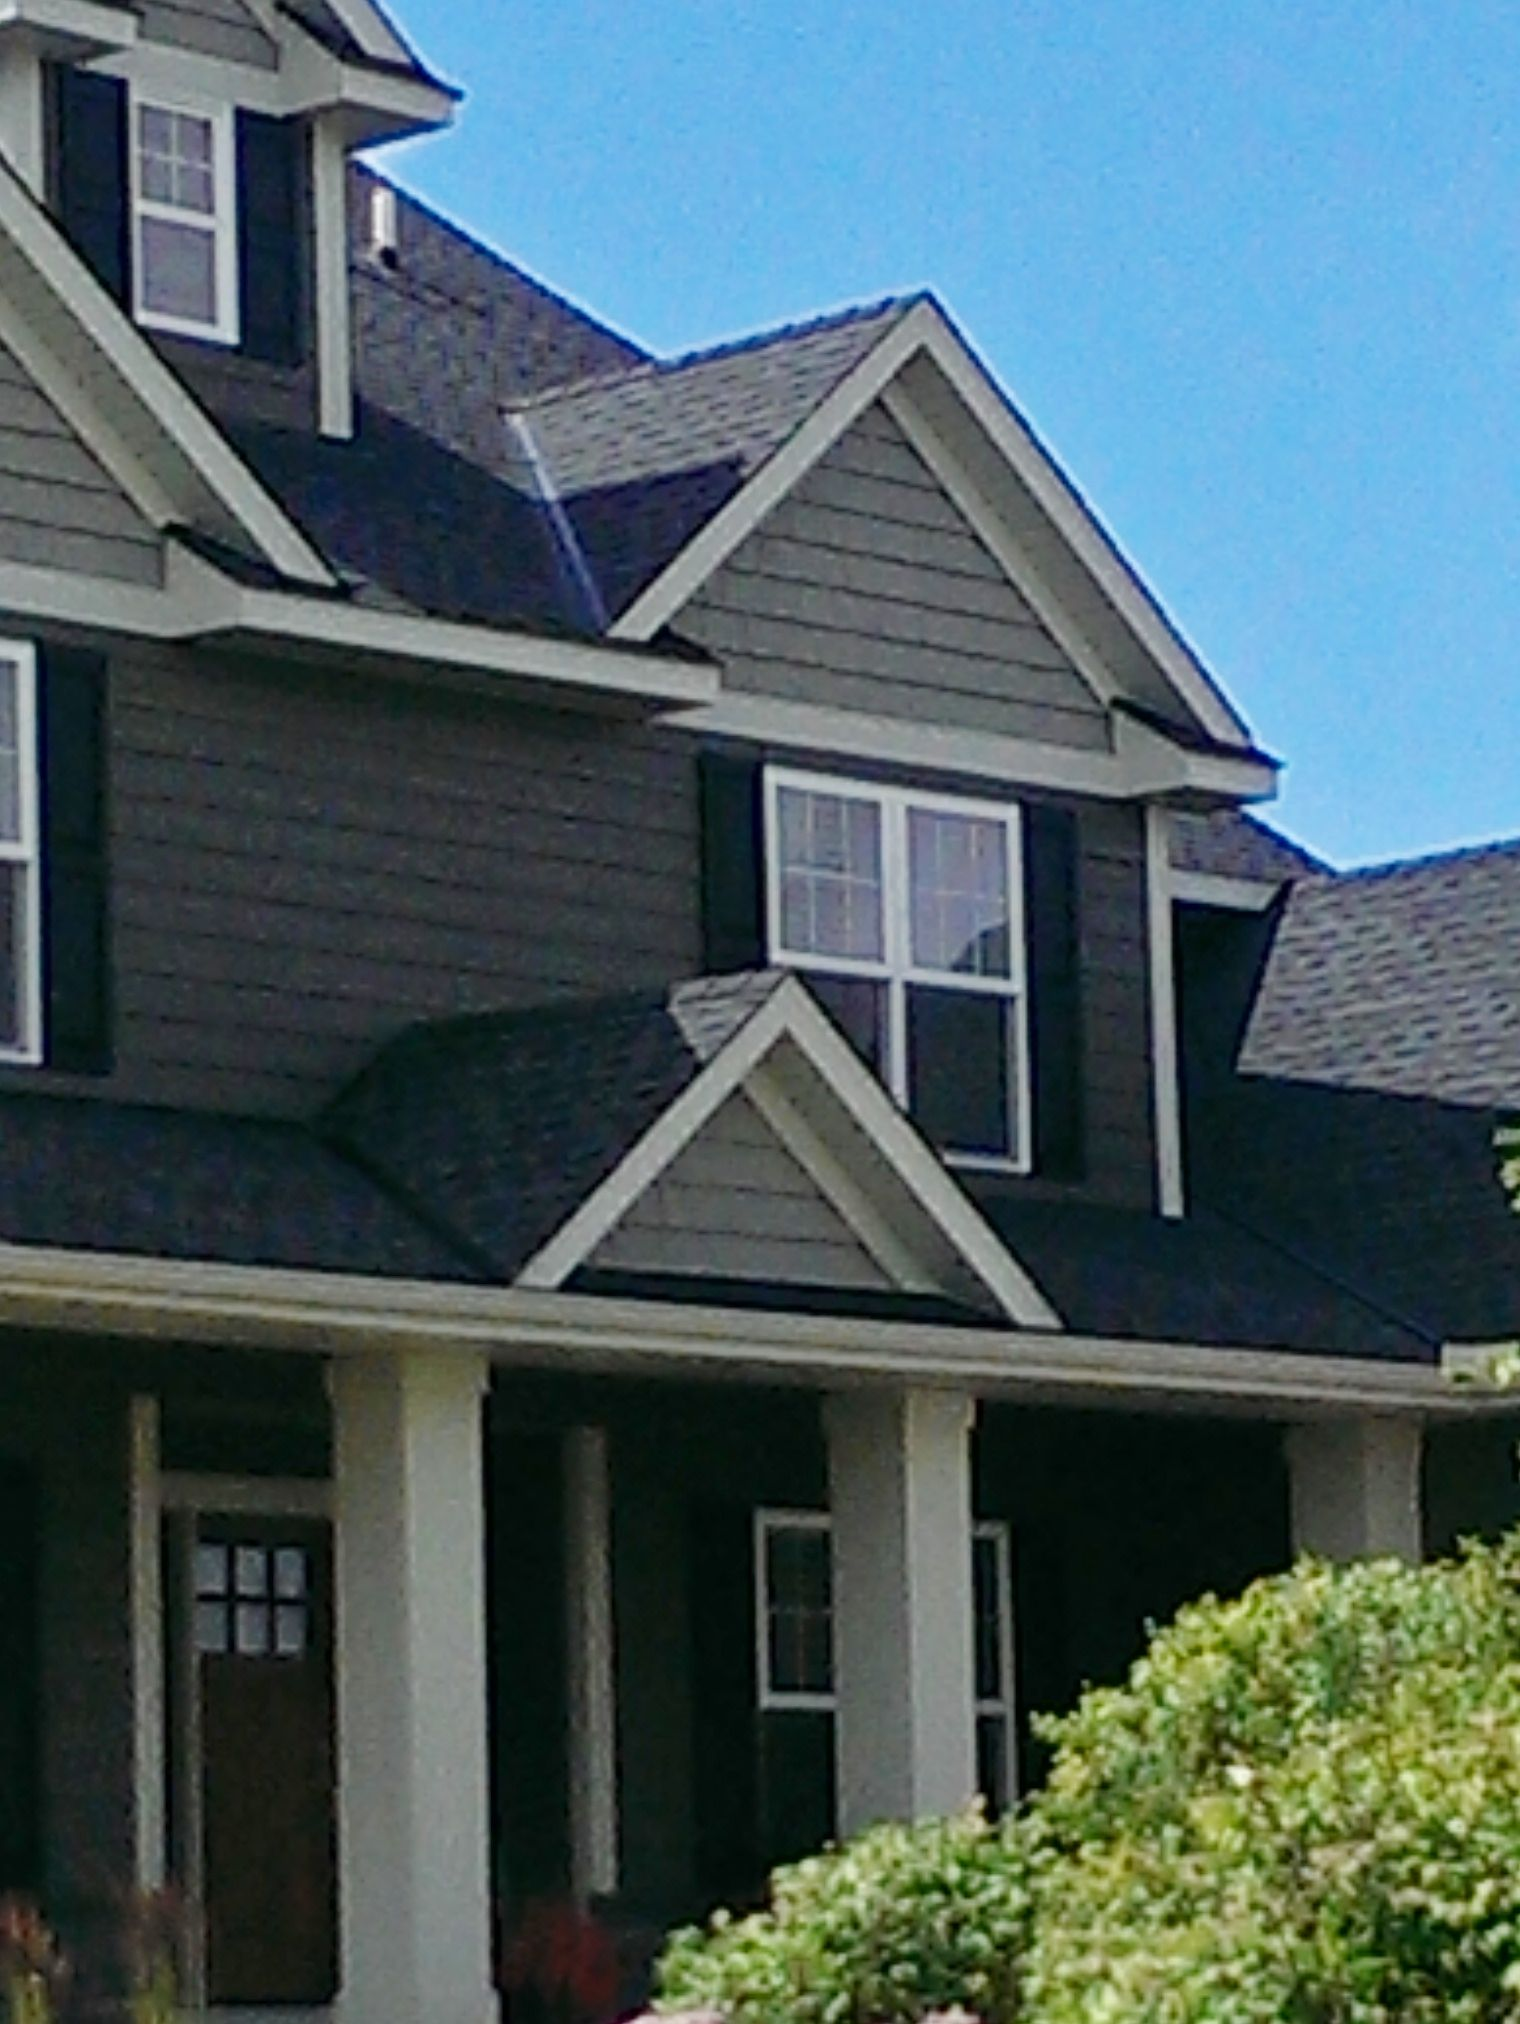 New Home Construction Vinyl Siding Vinyl Shakes Roof Gables White Window Trim Grey Exterior Vinyl Siding Exterior Rock Siding Stone Siding Exterior